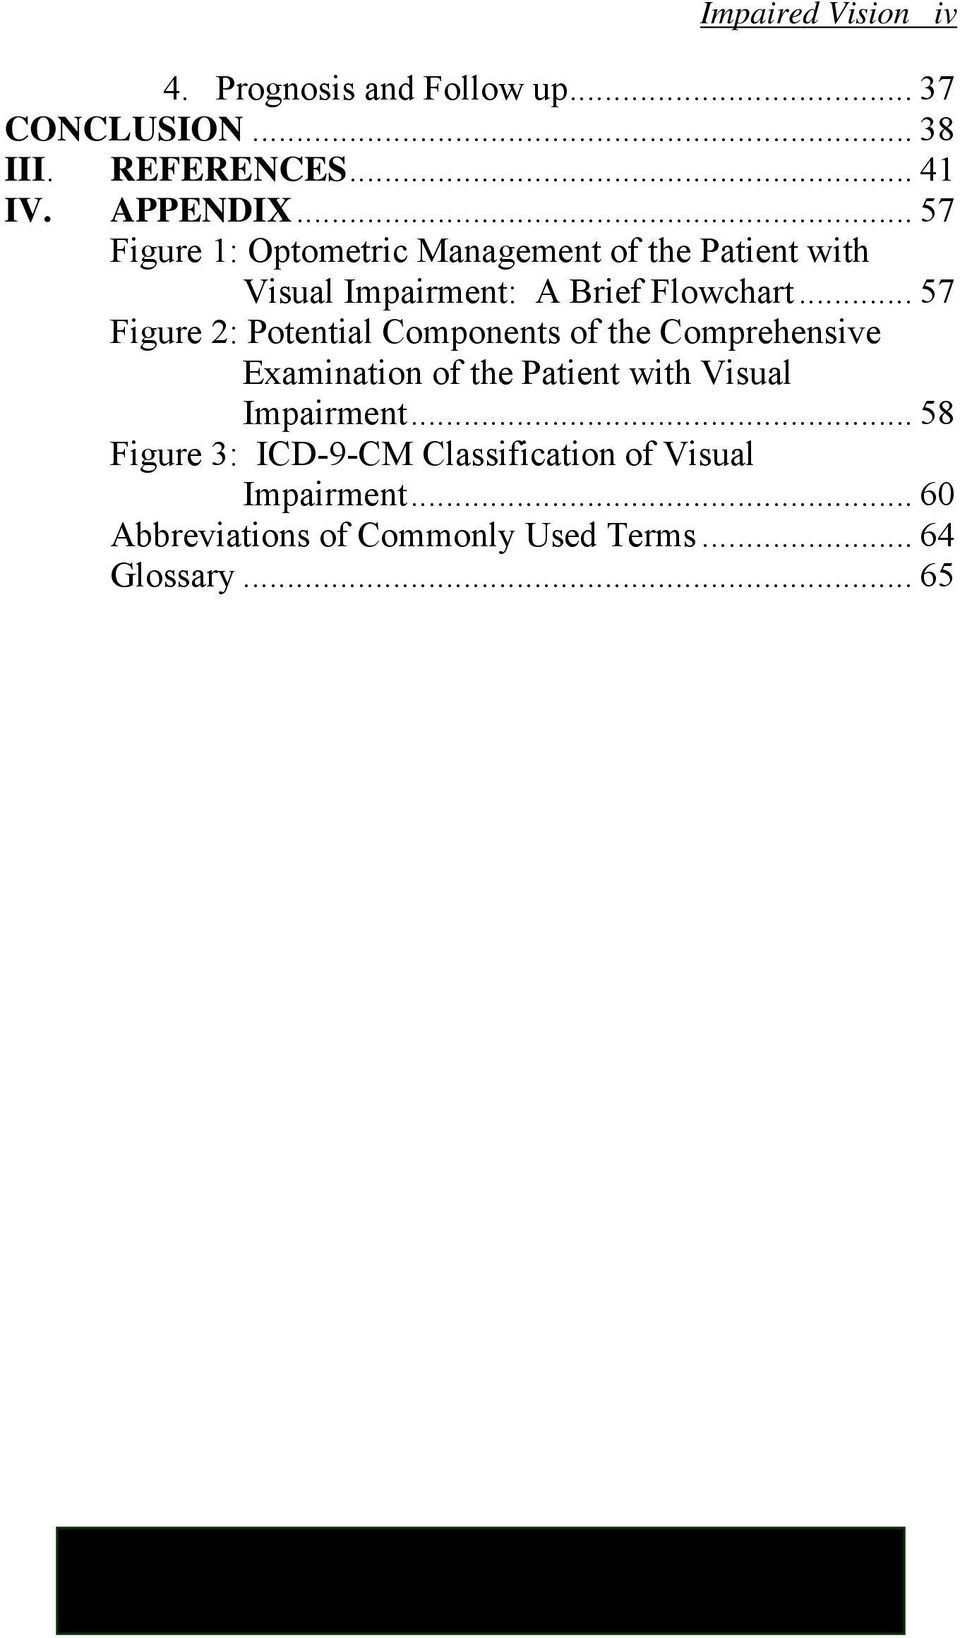 .. 57 Figure 2: Potential Components of the Comprehensive Examination of the Patient with Visual Impairment.